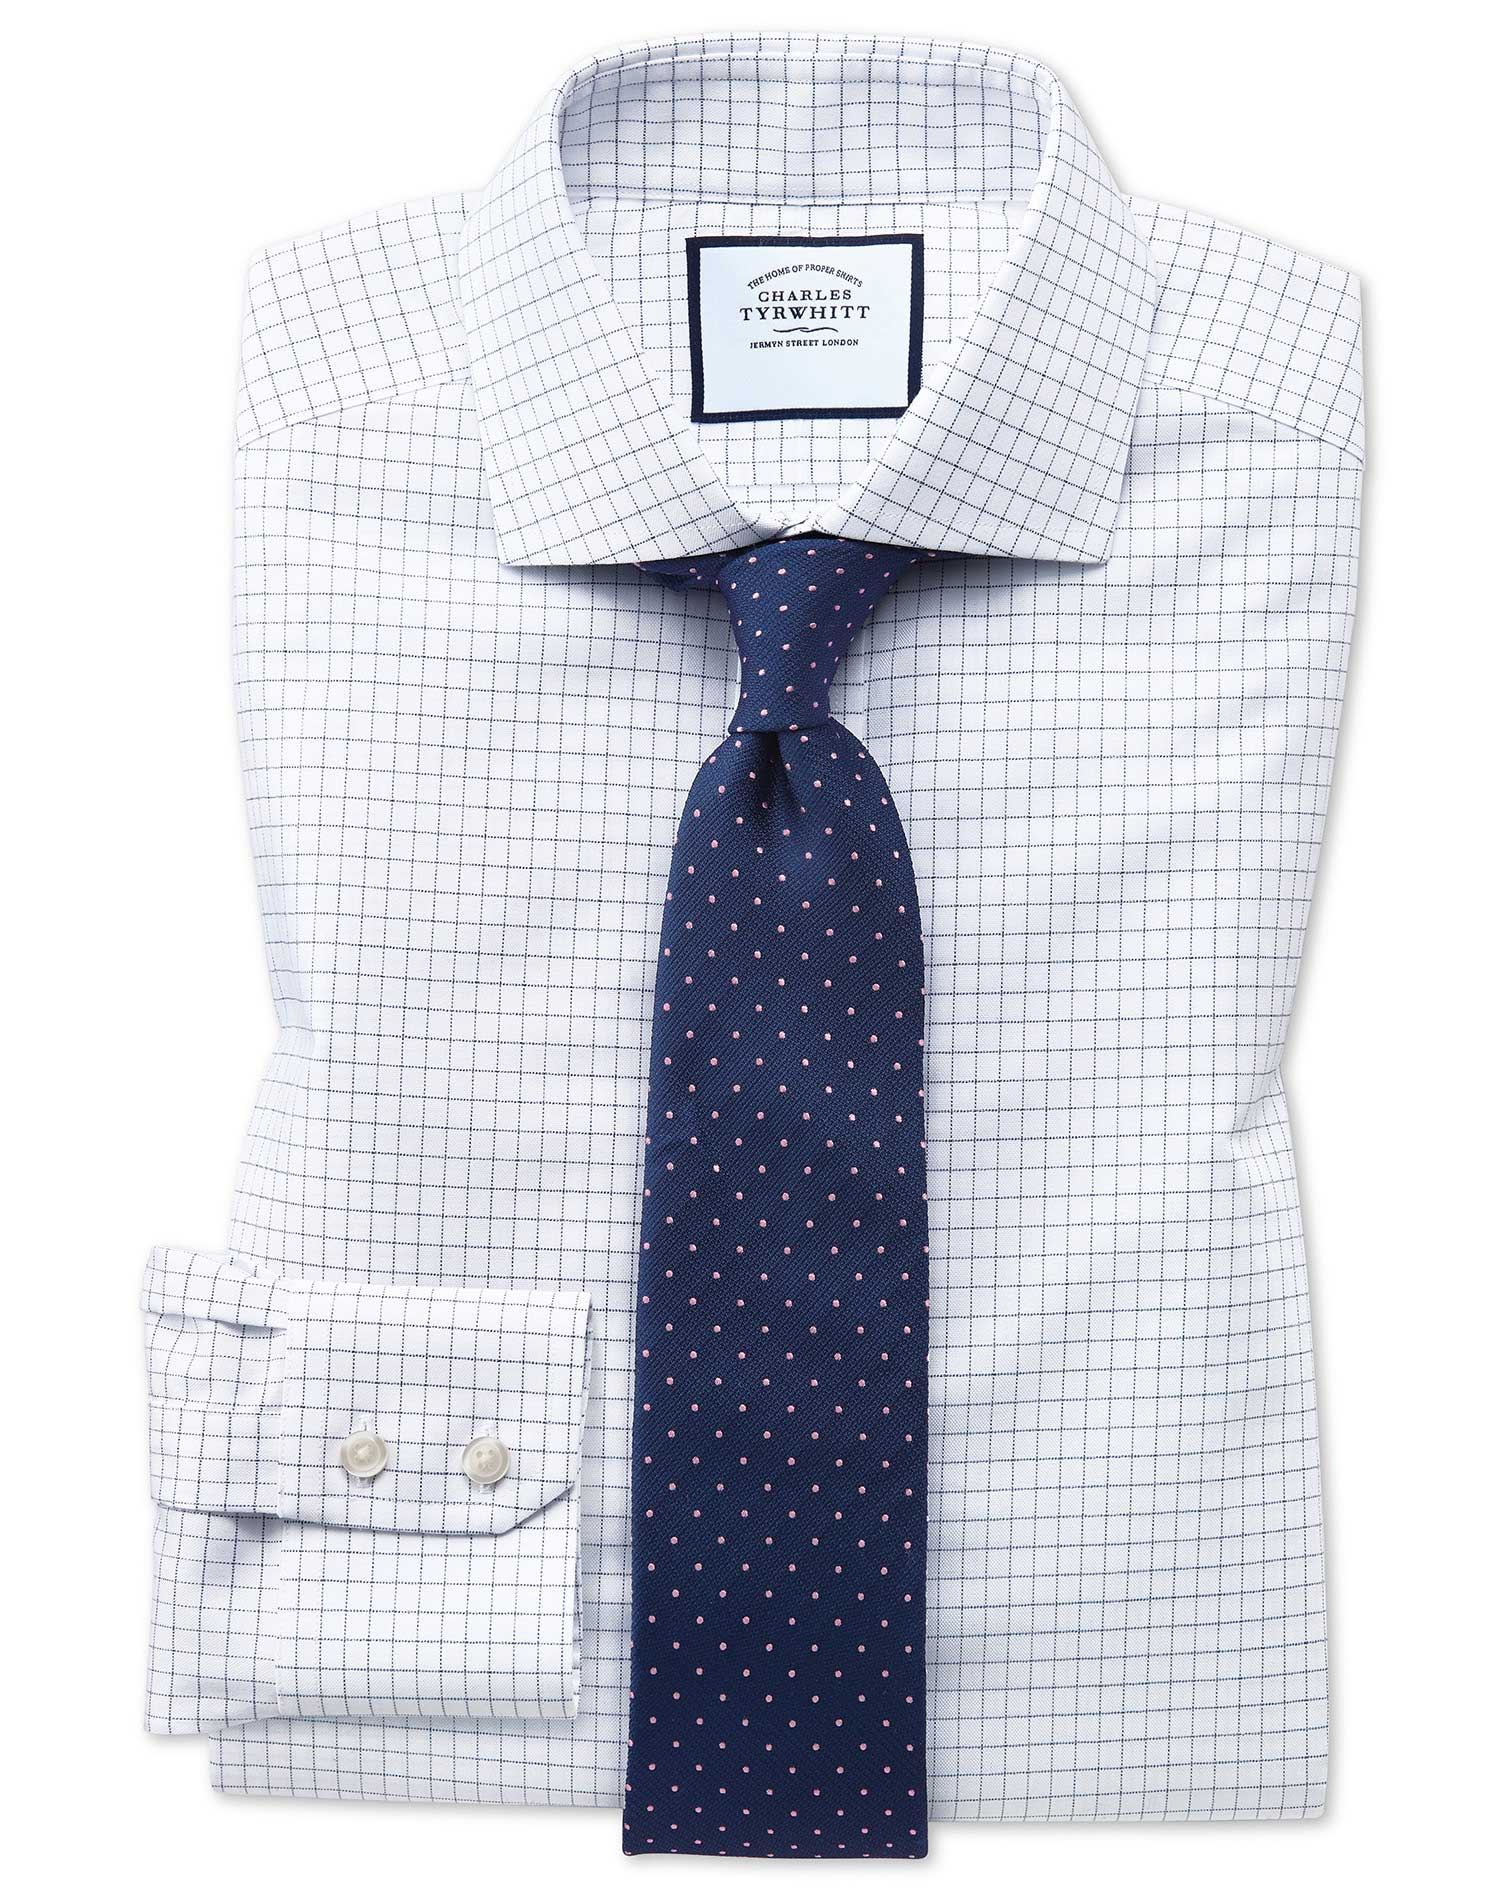 Slim Fit Non-Iron Cutaway Collar Navy Fine Check Cotton Formal Shirt Single Cuff Size 17.5/36 by Cha